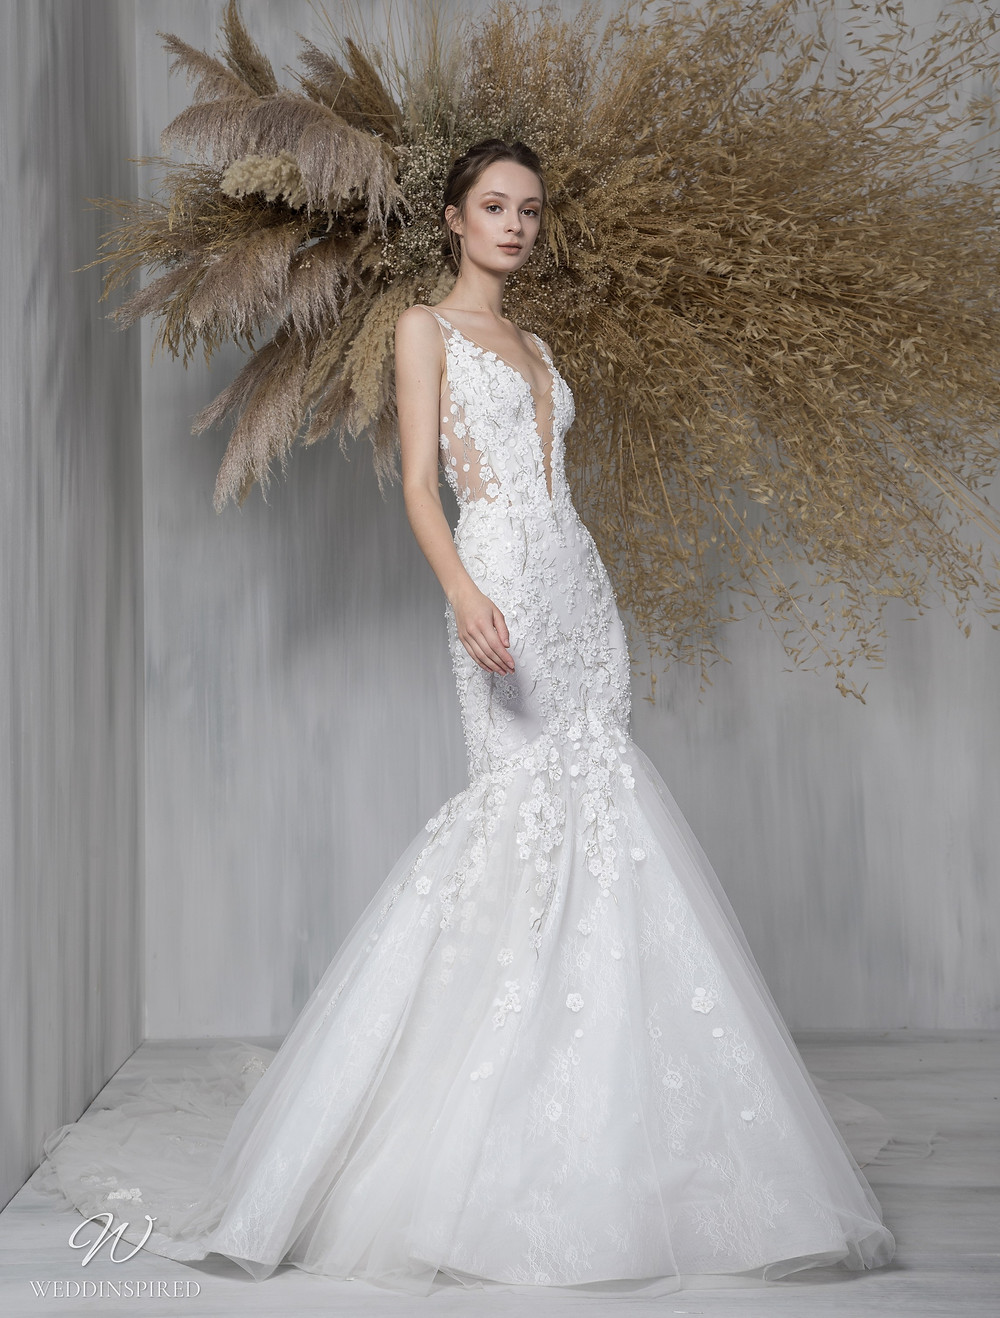 A Tony Ward 2021 lace and mesh mermaid wedding dress with a v neck and straps